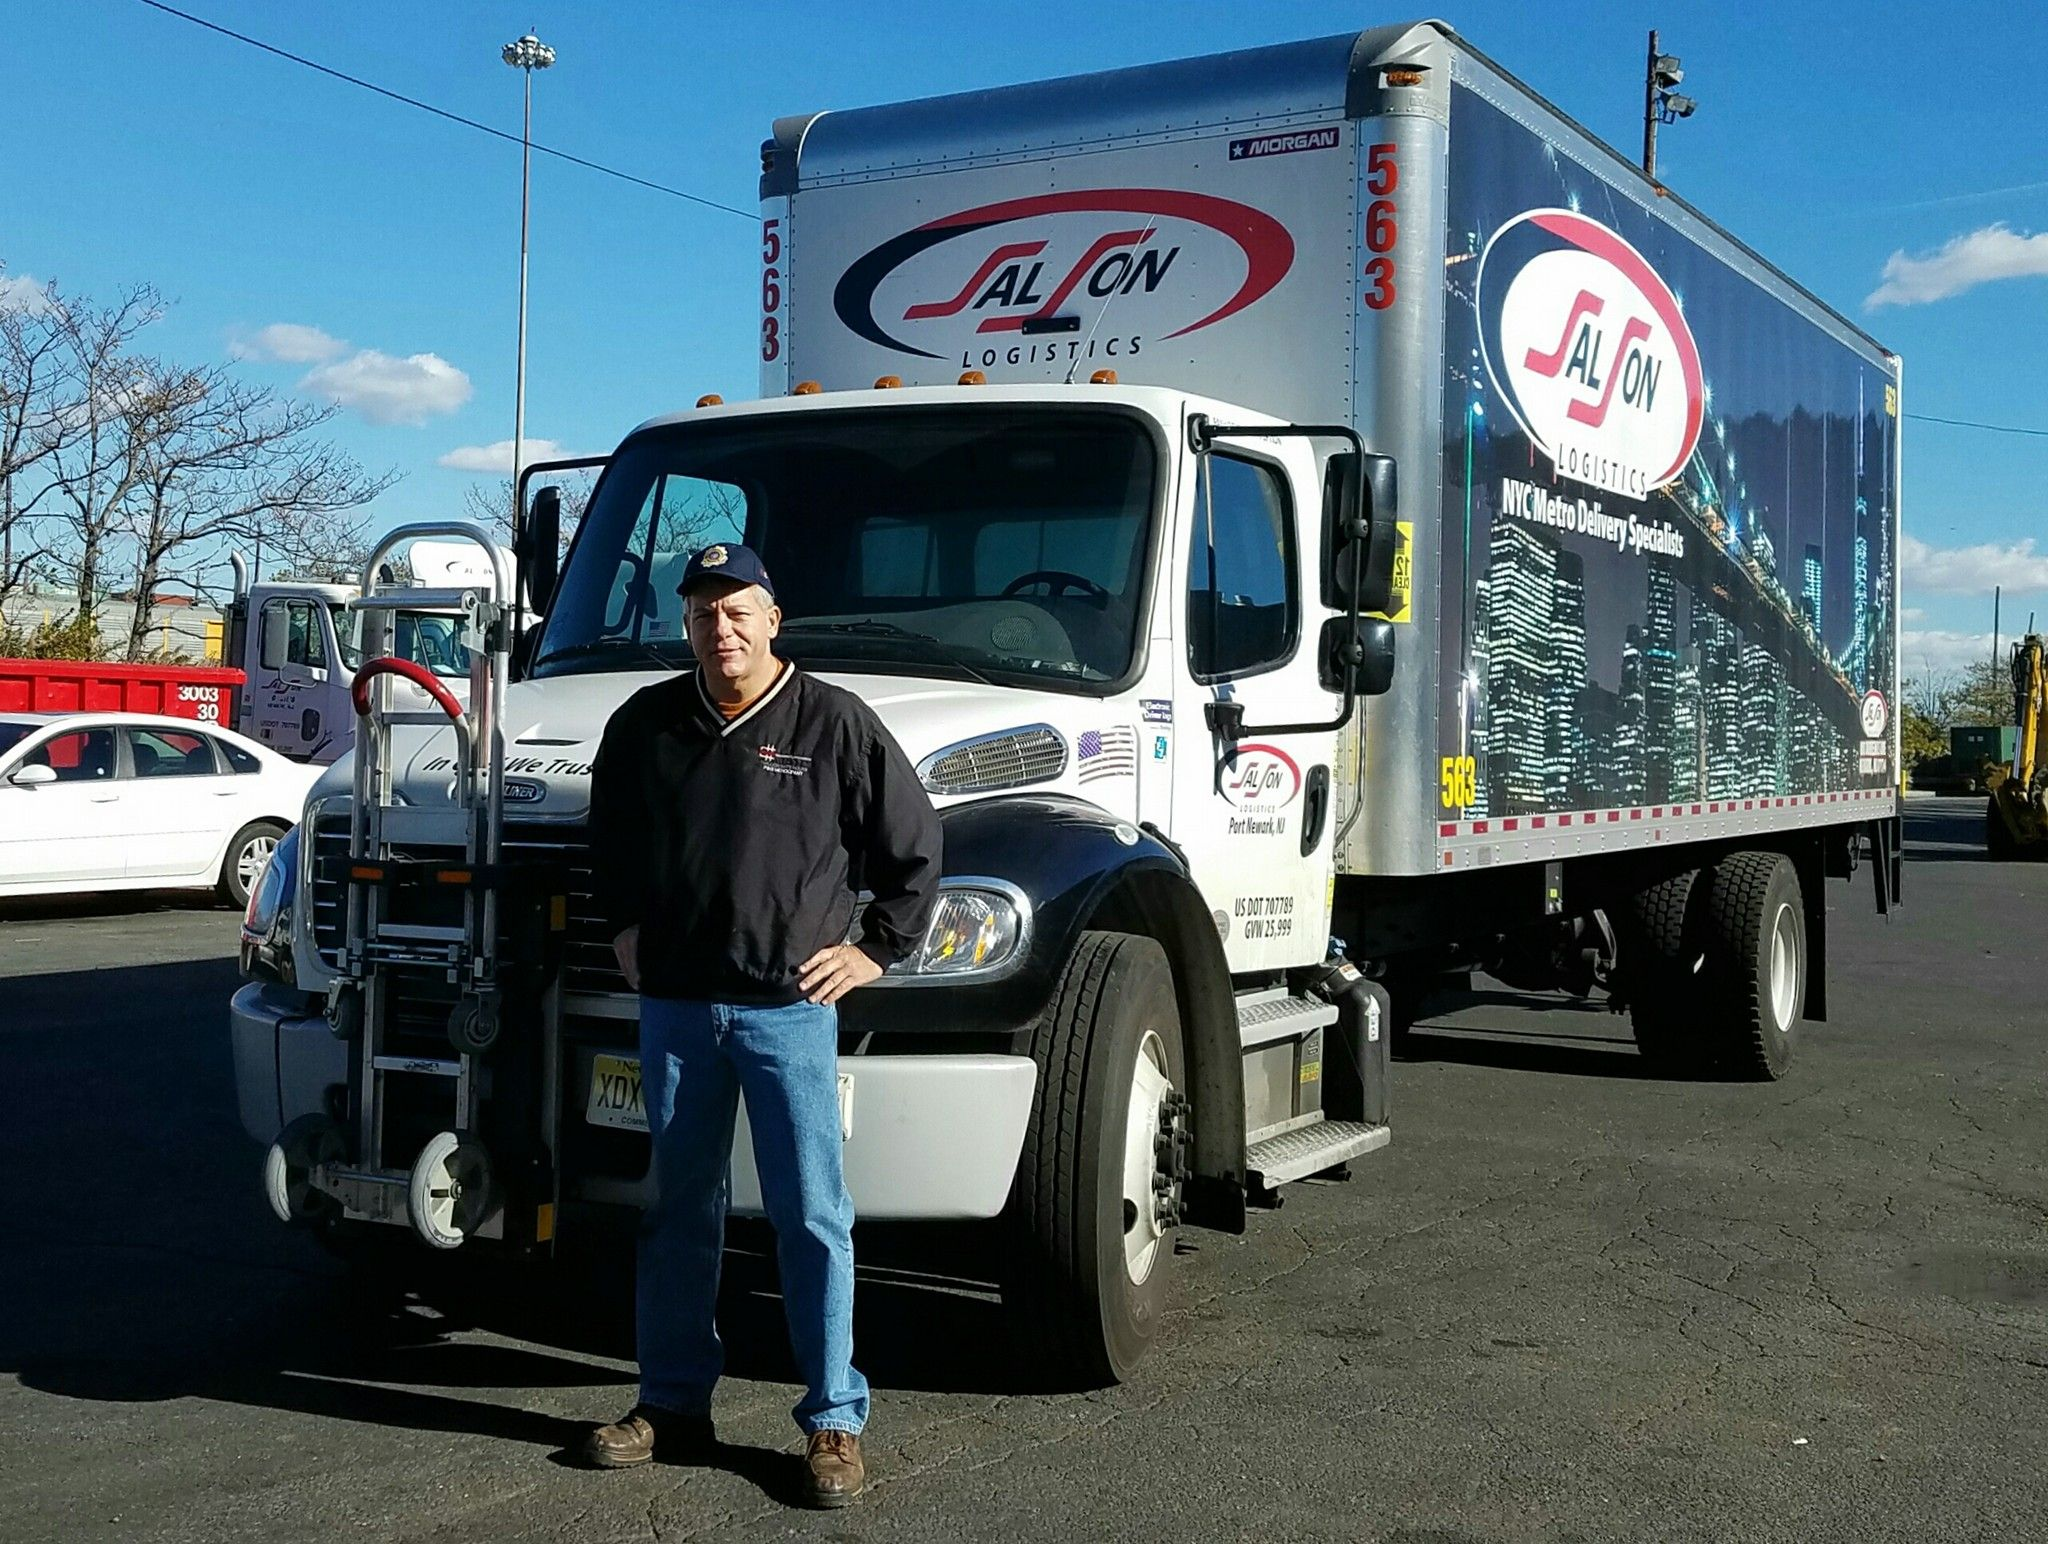 Carl Boettcher National Accounts Manager For Hts Systems Visits Salson Logistics In Port Newark New Jersey Salson Logistics Trucks Hand Trucks Worker Safety